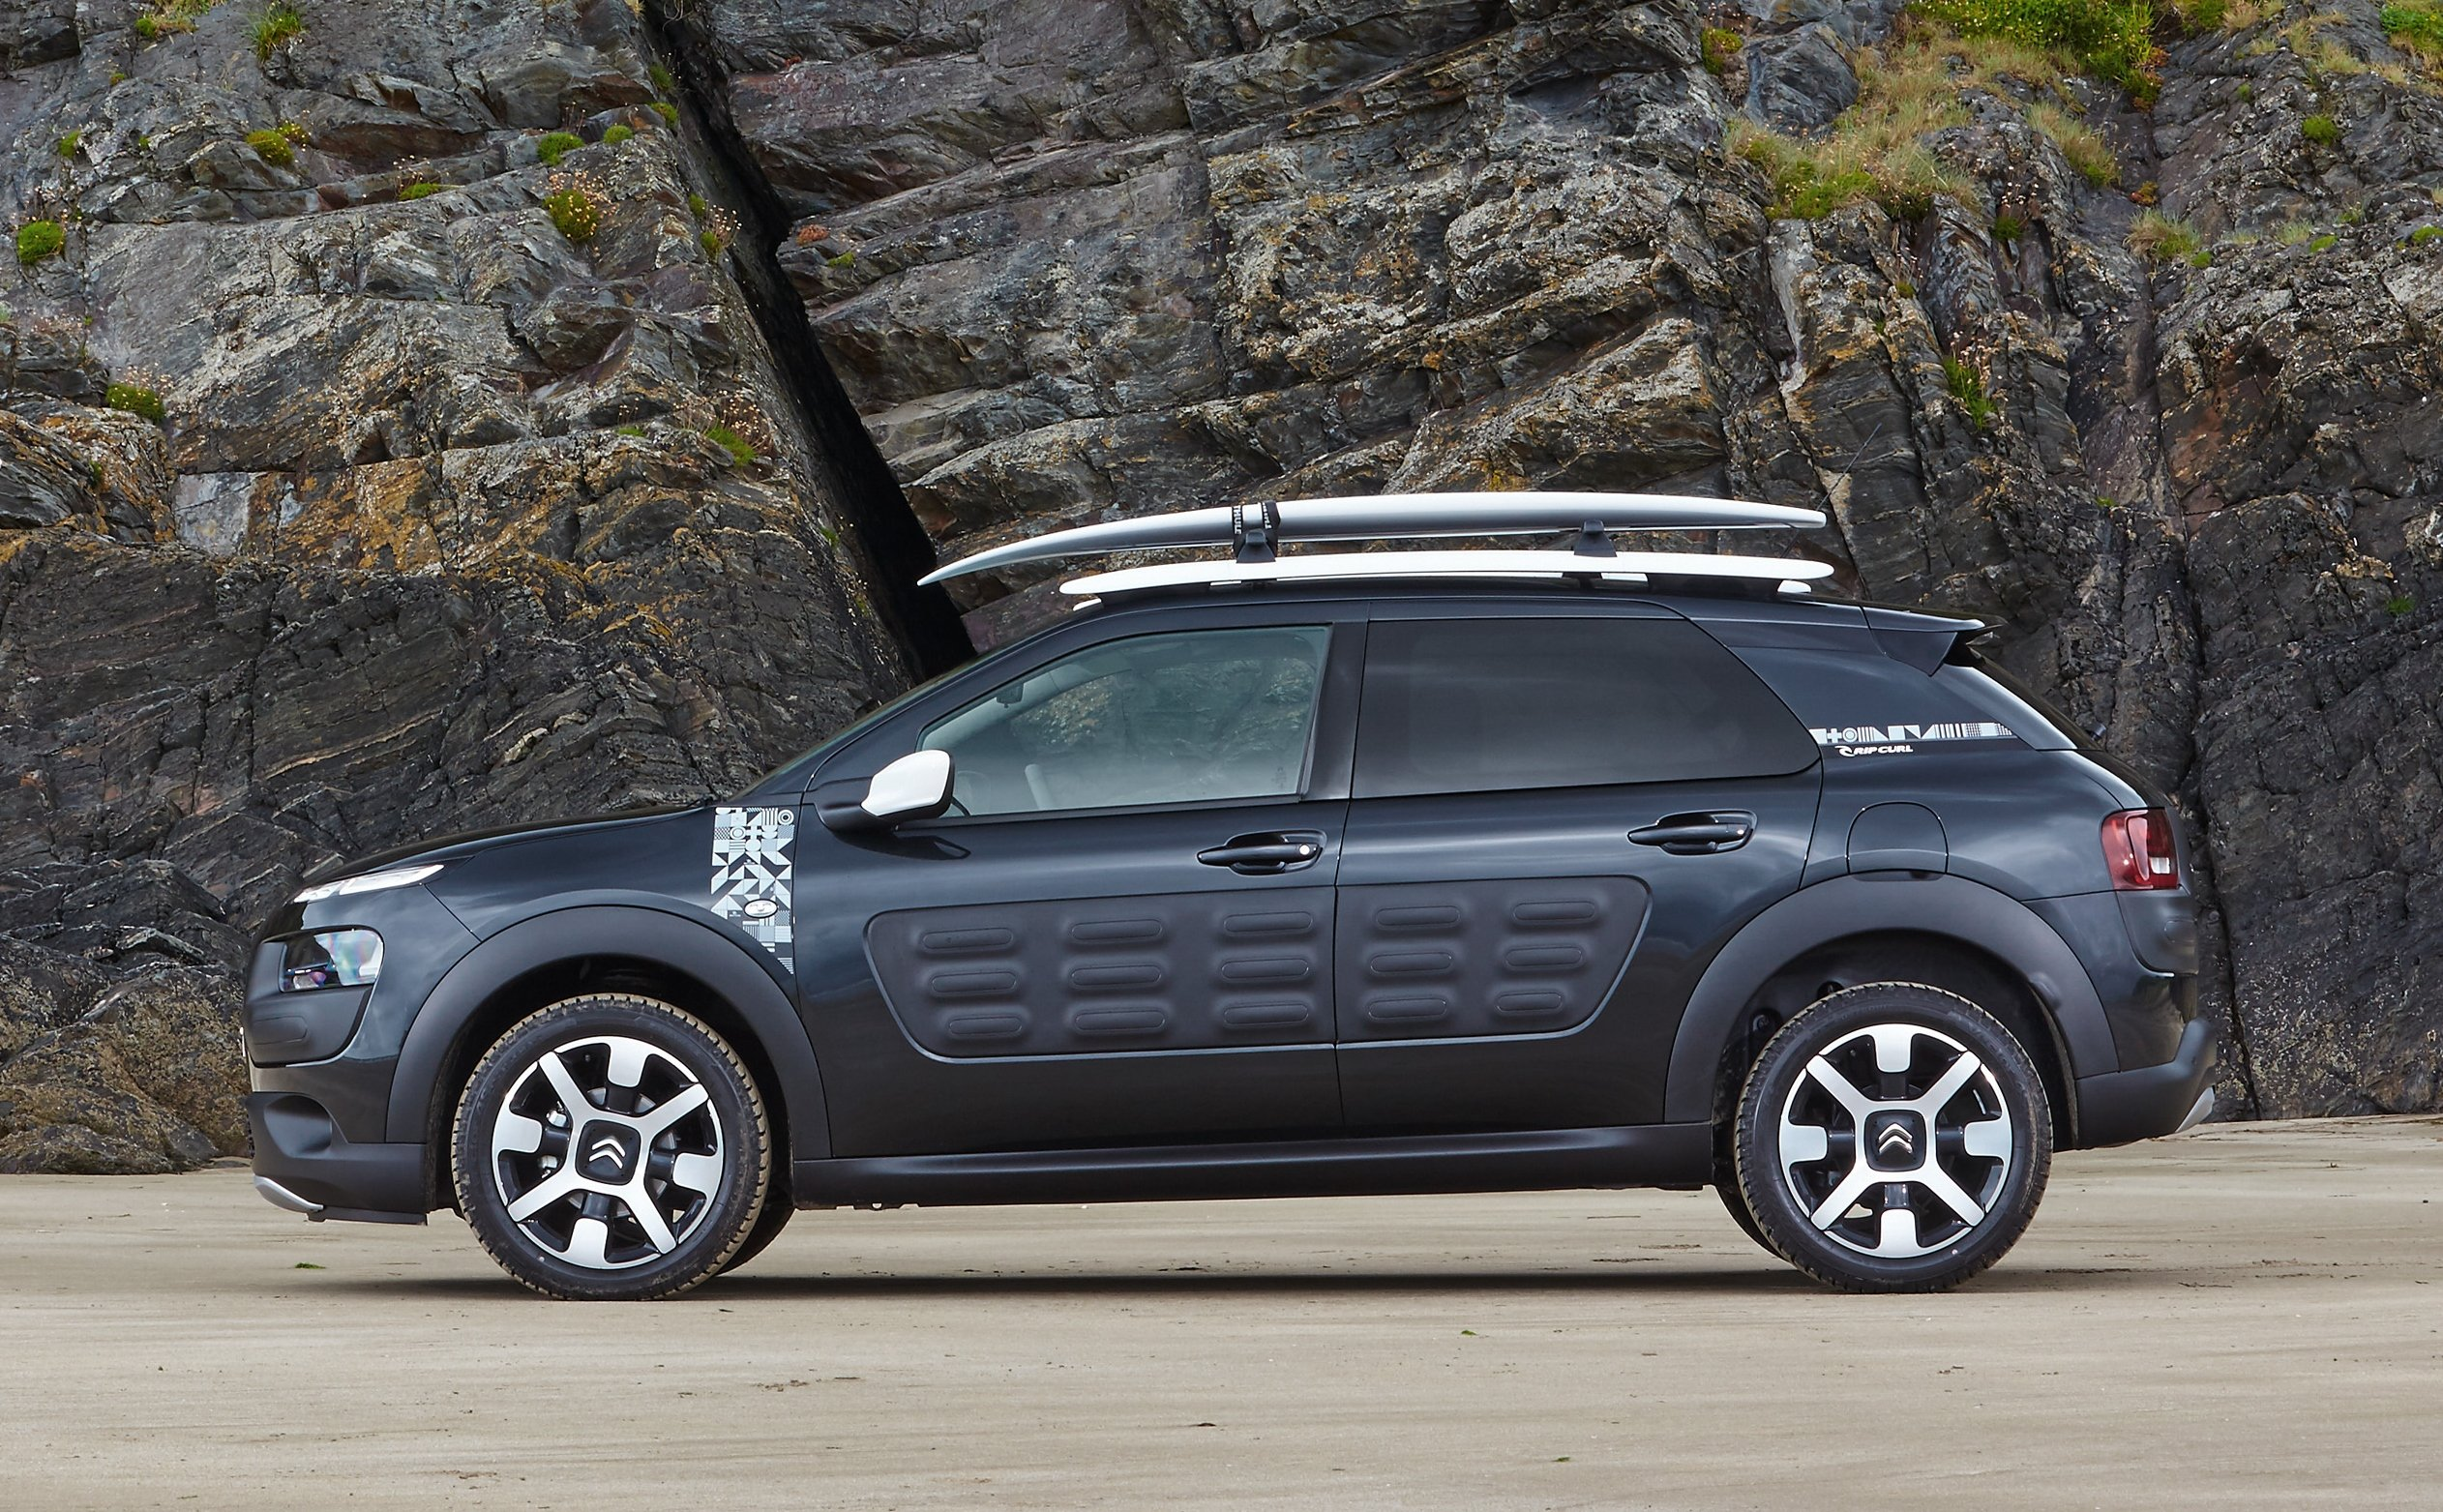 citroen c4 cactus rip curl coming soon to ireland. Black Bedroom Furniture Sets. Home Design Ideas